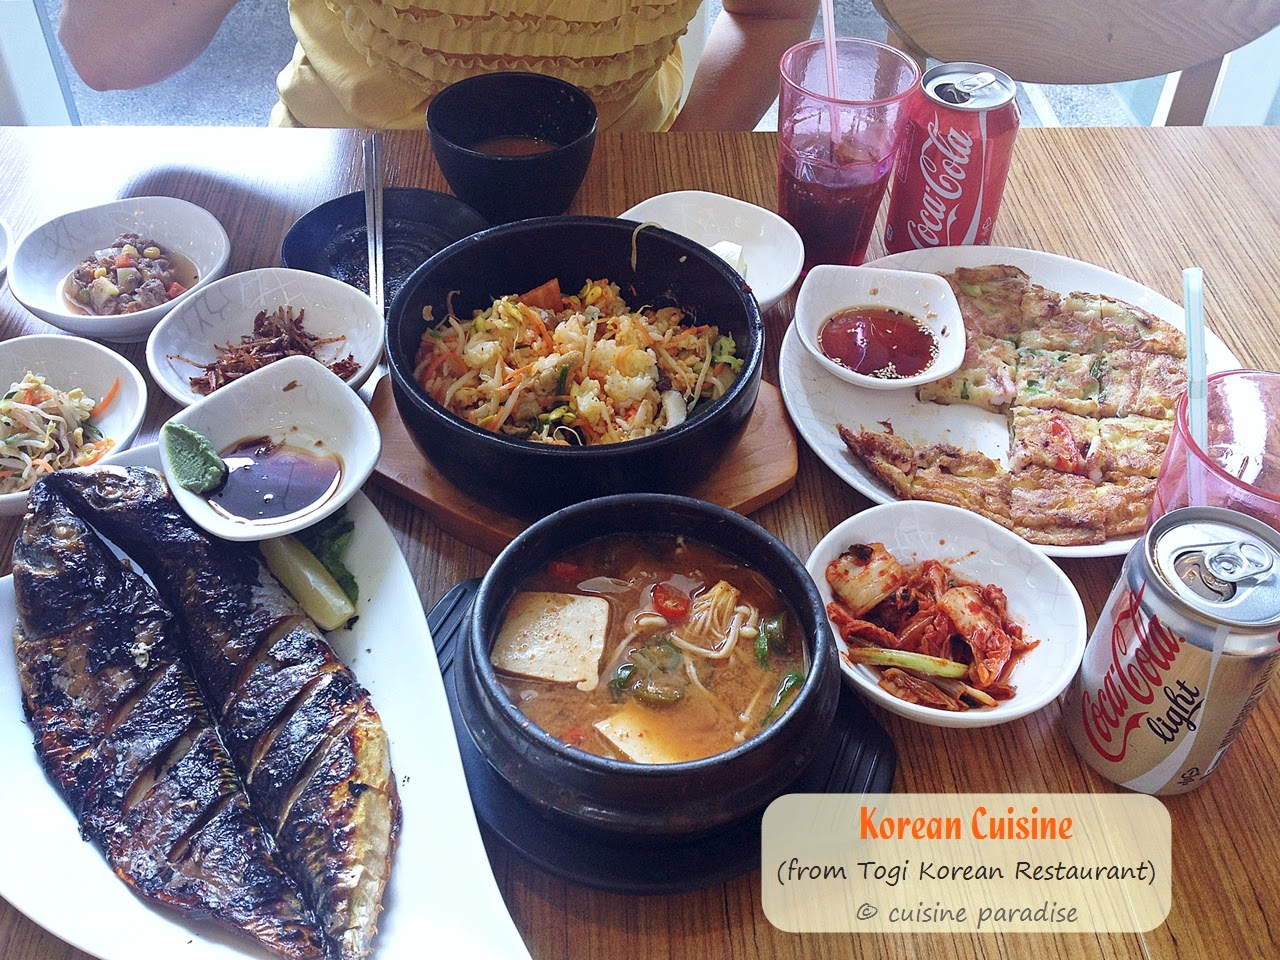 Cuisine paradise singapore food blog recipes reviews and travel authentic korean cuisine forumfinder Image collections